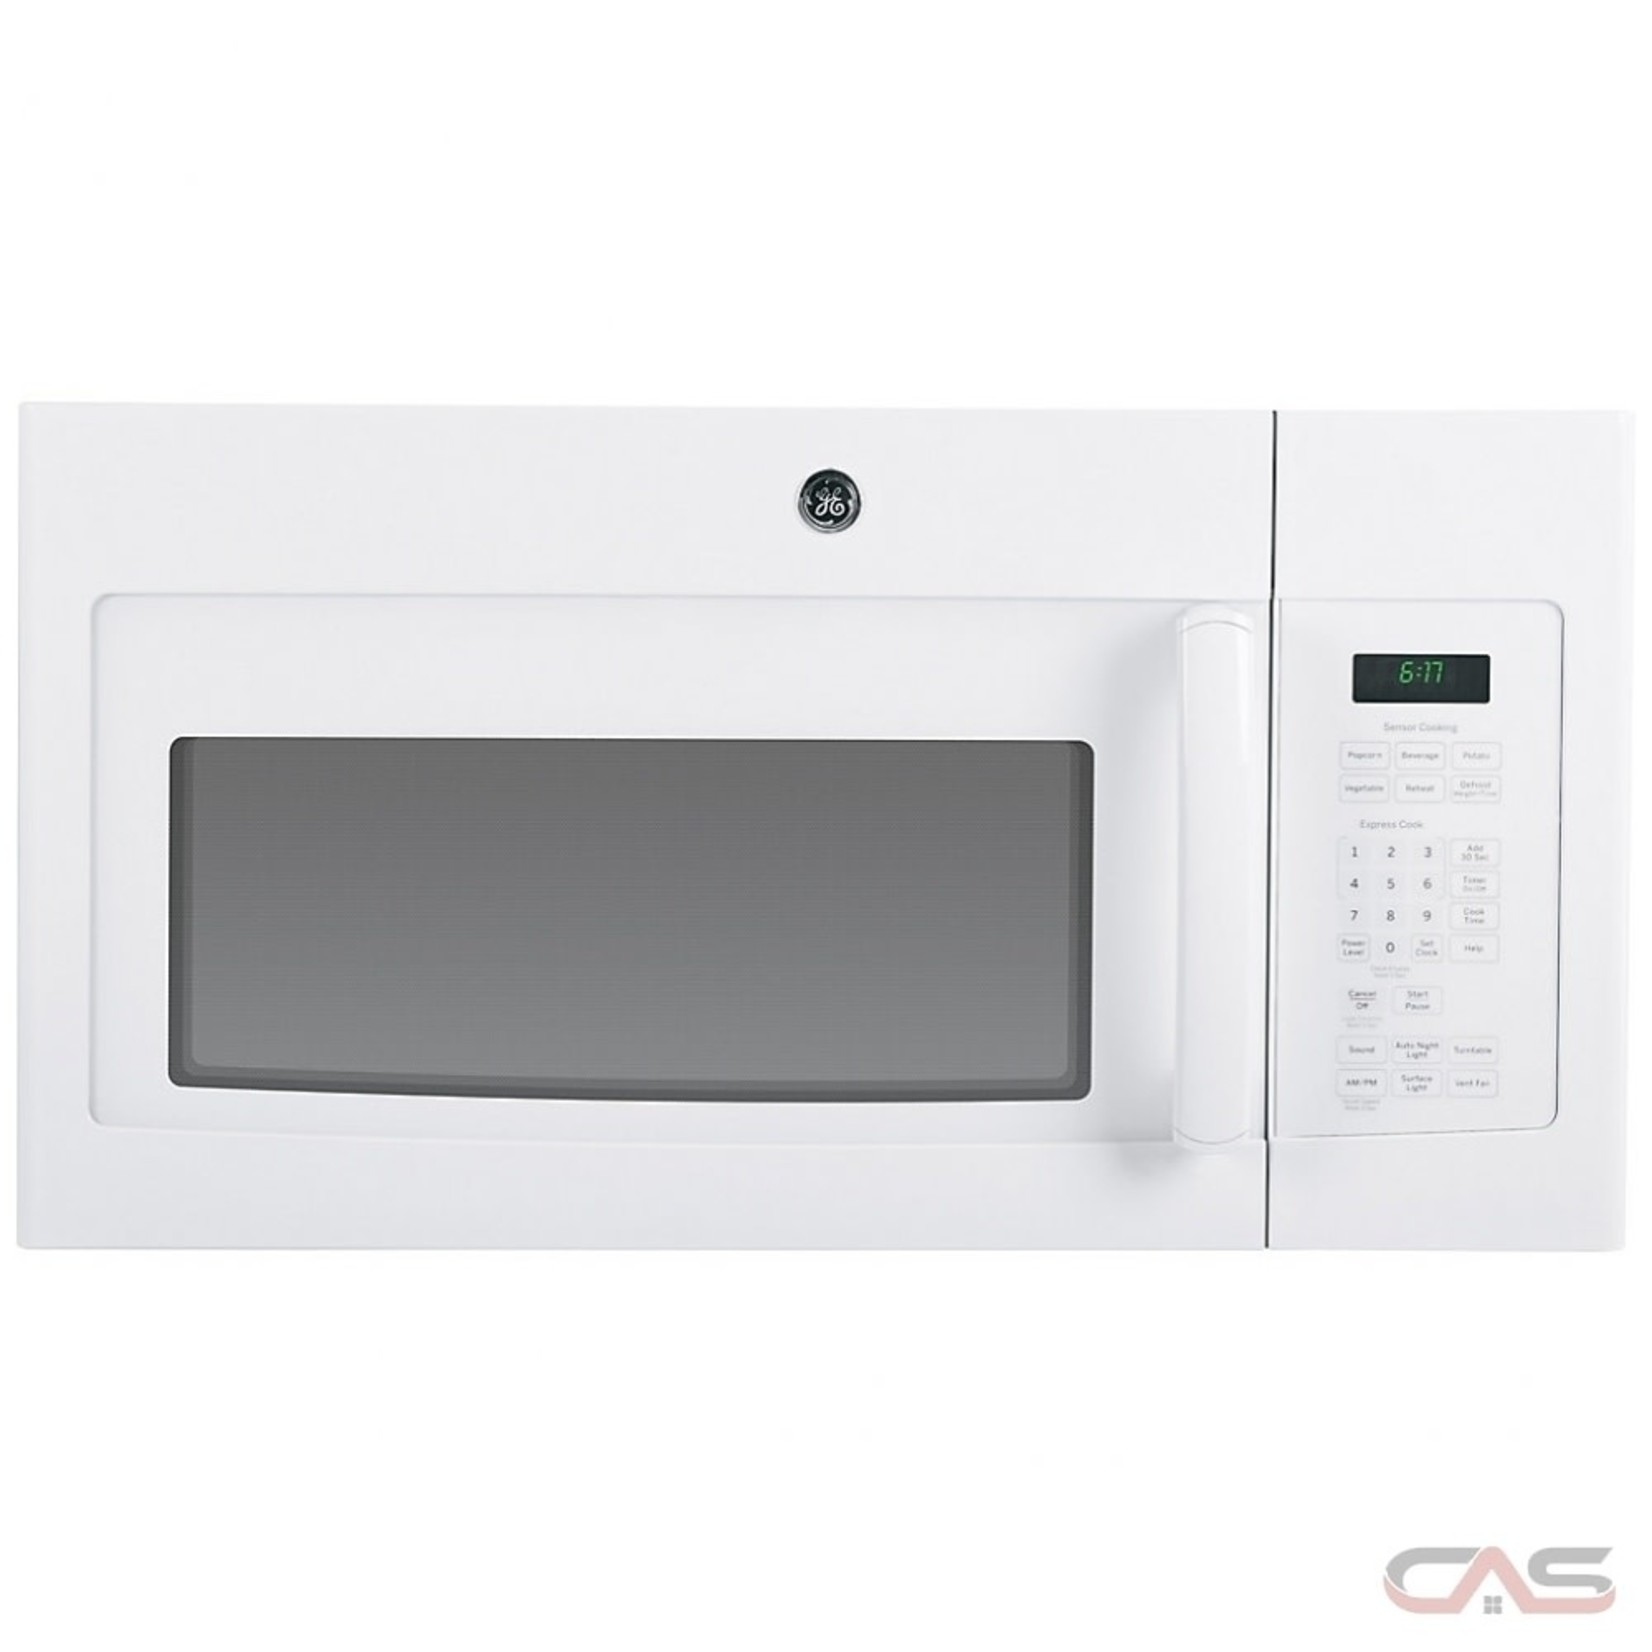 GE Over the Range Microwave, 30 inch Exterior Width, 1000W Watts, 1.6 cu. ft. WHITE JVM1630WFC